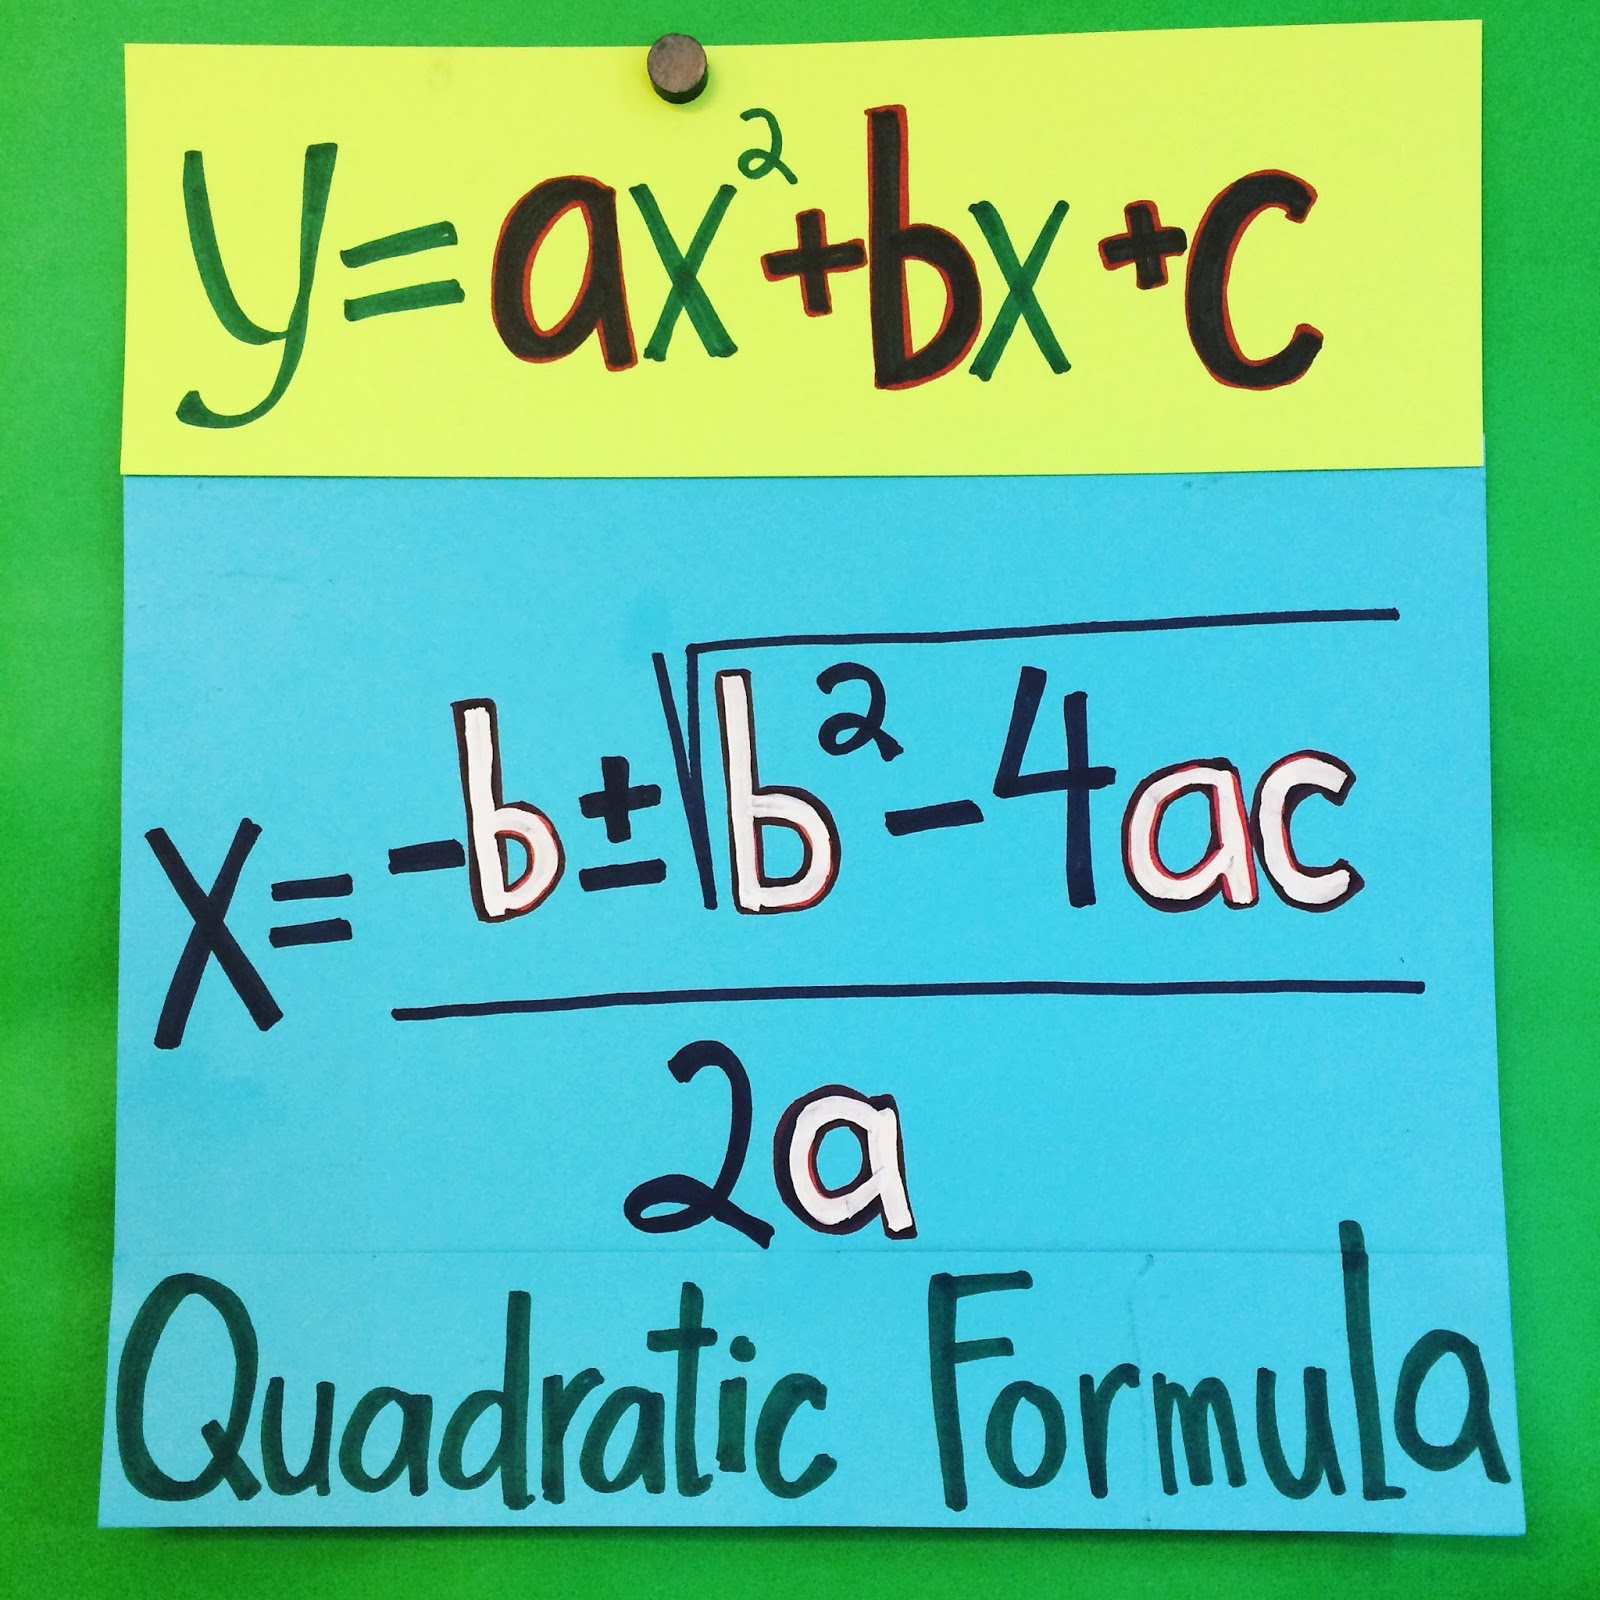 Scaffolded Math And Science Intro To The Quadratic Formula